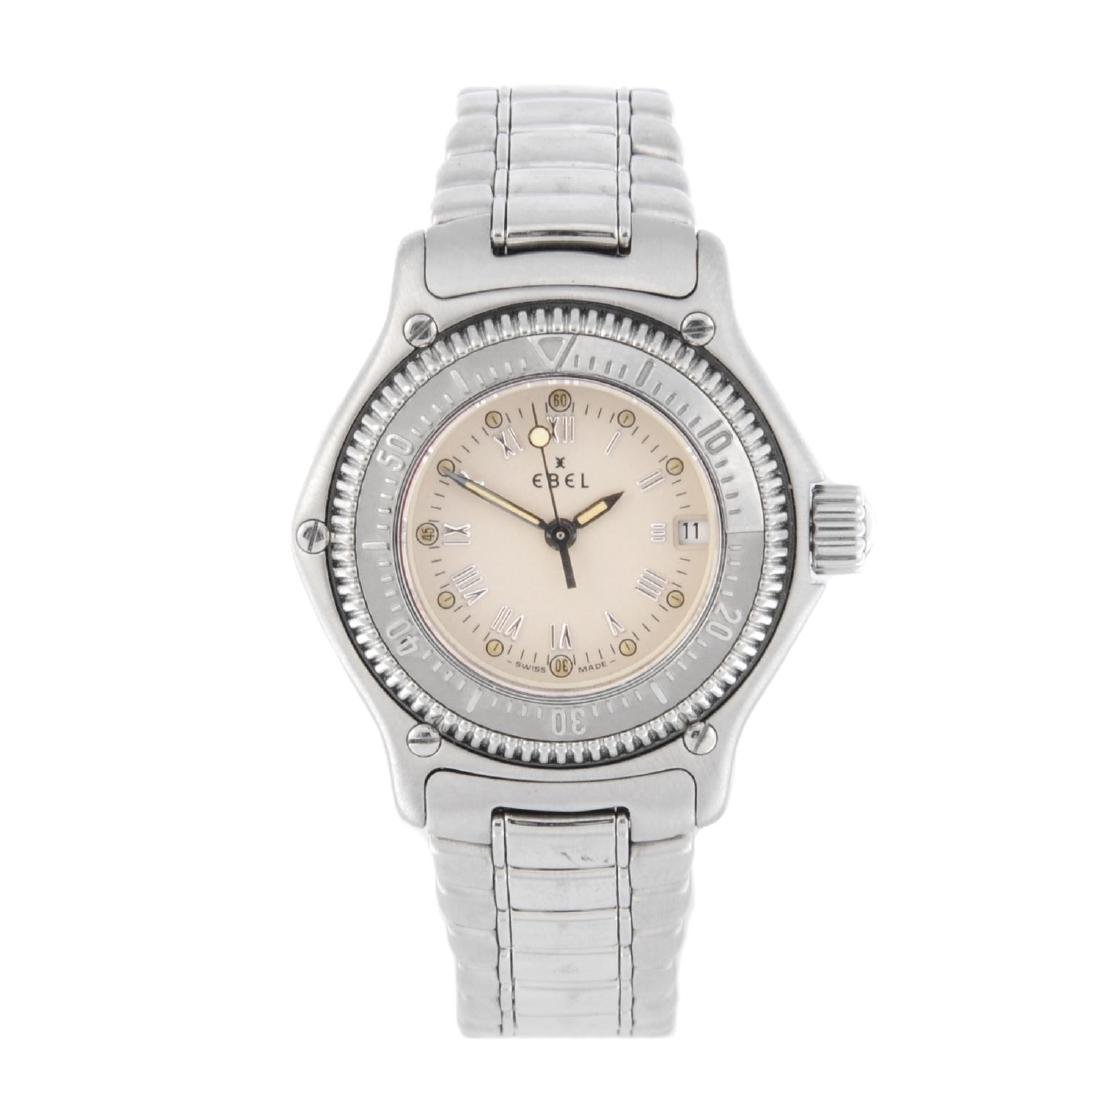 EBEL - a lady's Discovery bracelet watch. Stainless